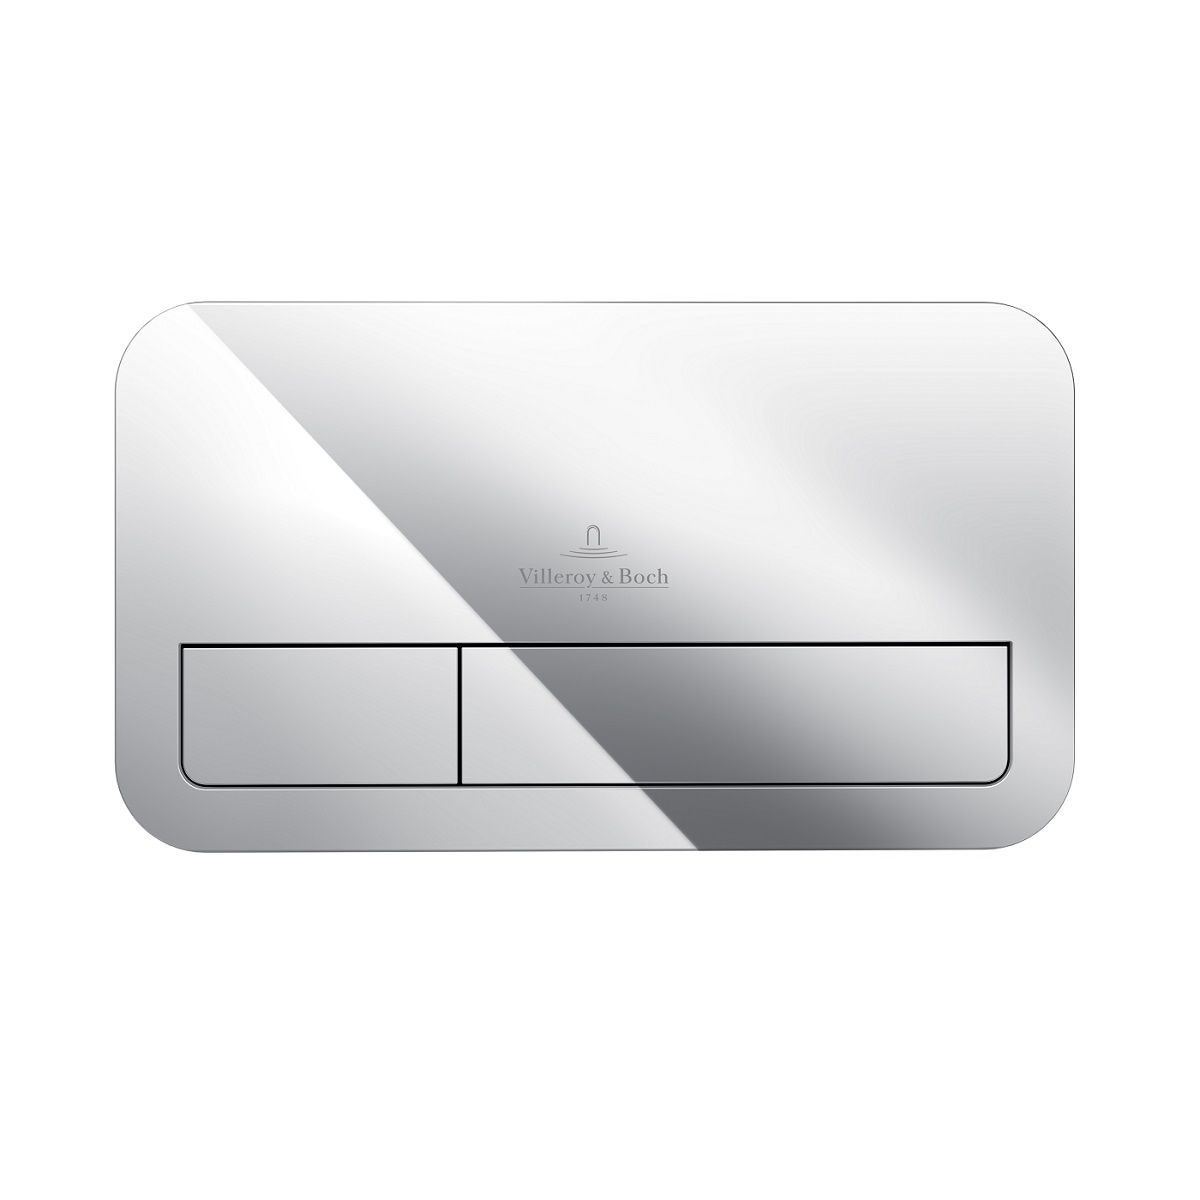 Villeroy and Boch ViConnect E200 Flush Plate